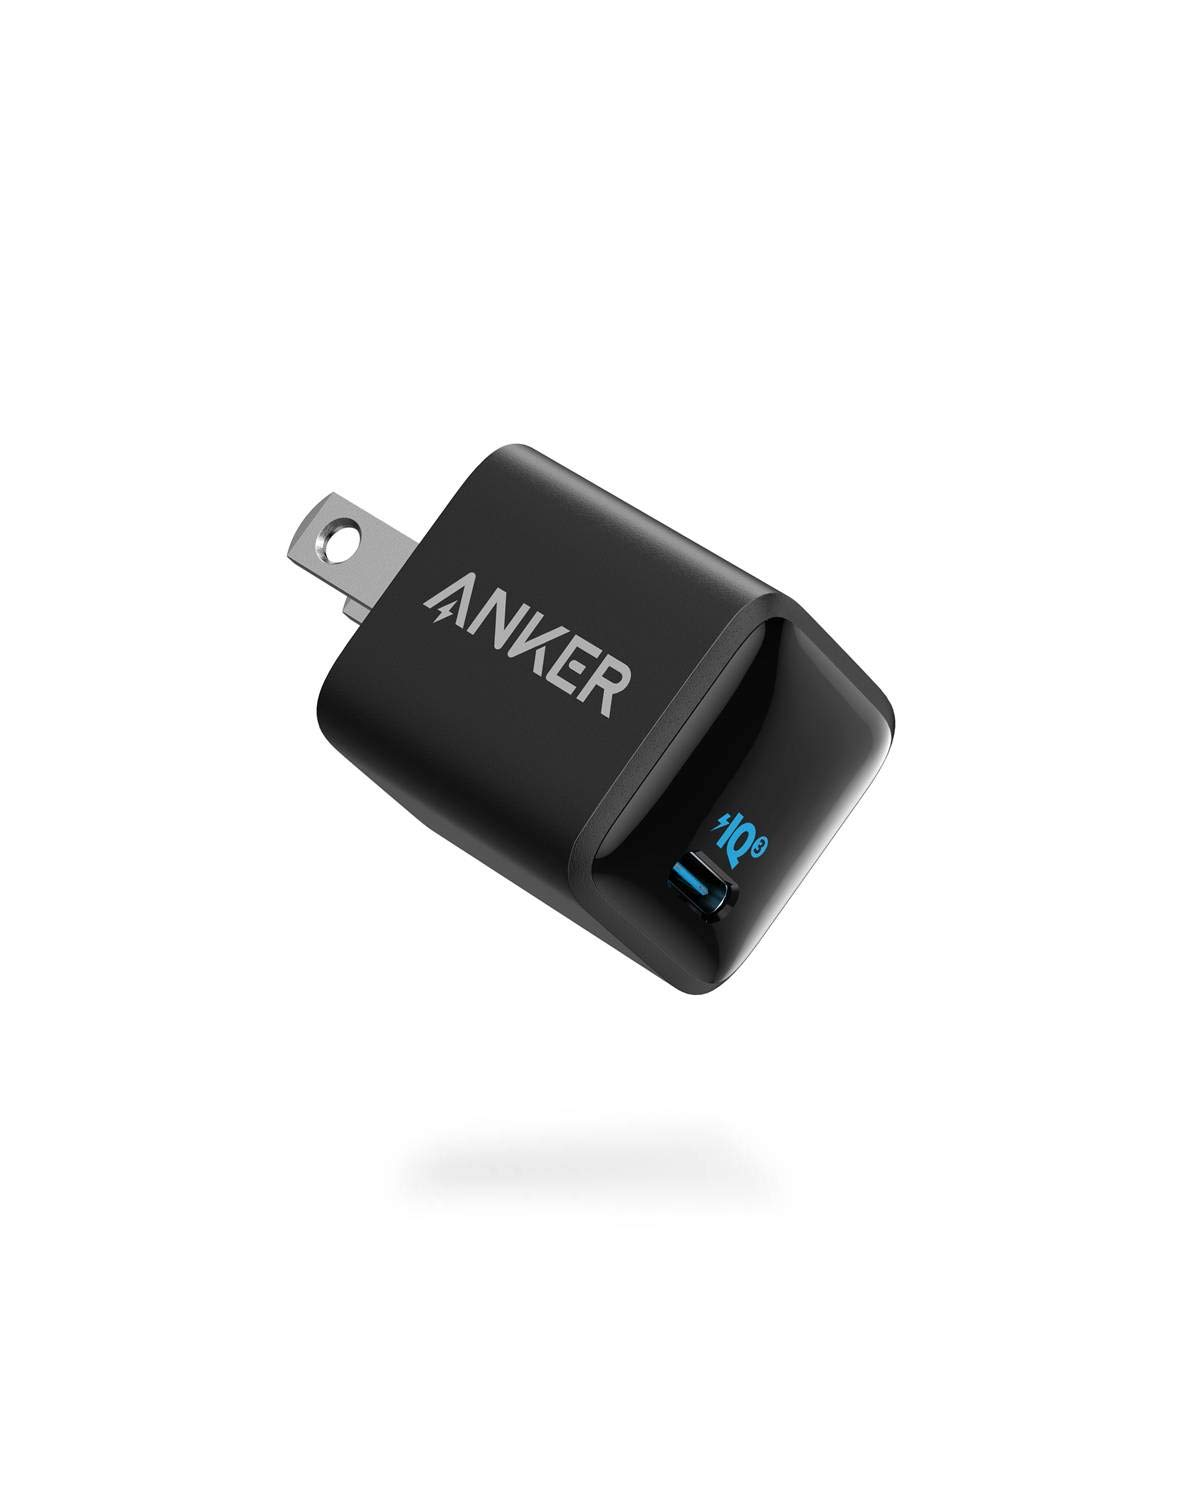 USB C Charger, Anker Nano Charger 20W PIQ 3.0 Durable Compact Fast Charger, PowerPort III Charger for iPhone 12/12 Mini/12 Pro/12 Pro Max/11, Galaxy, Pixel 4/3, iPad Pro (Cable Not Included)